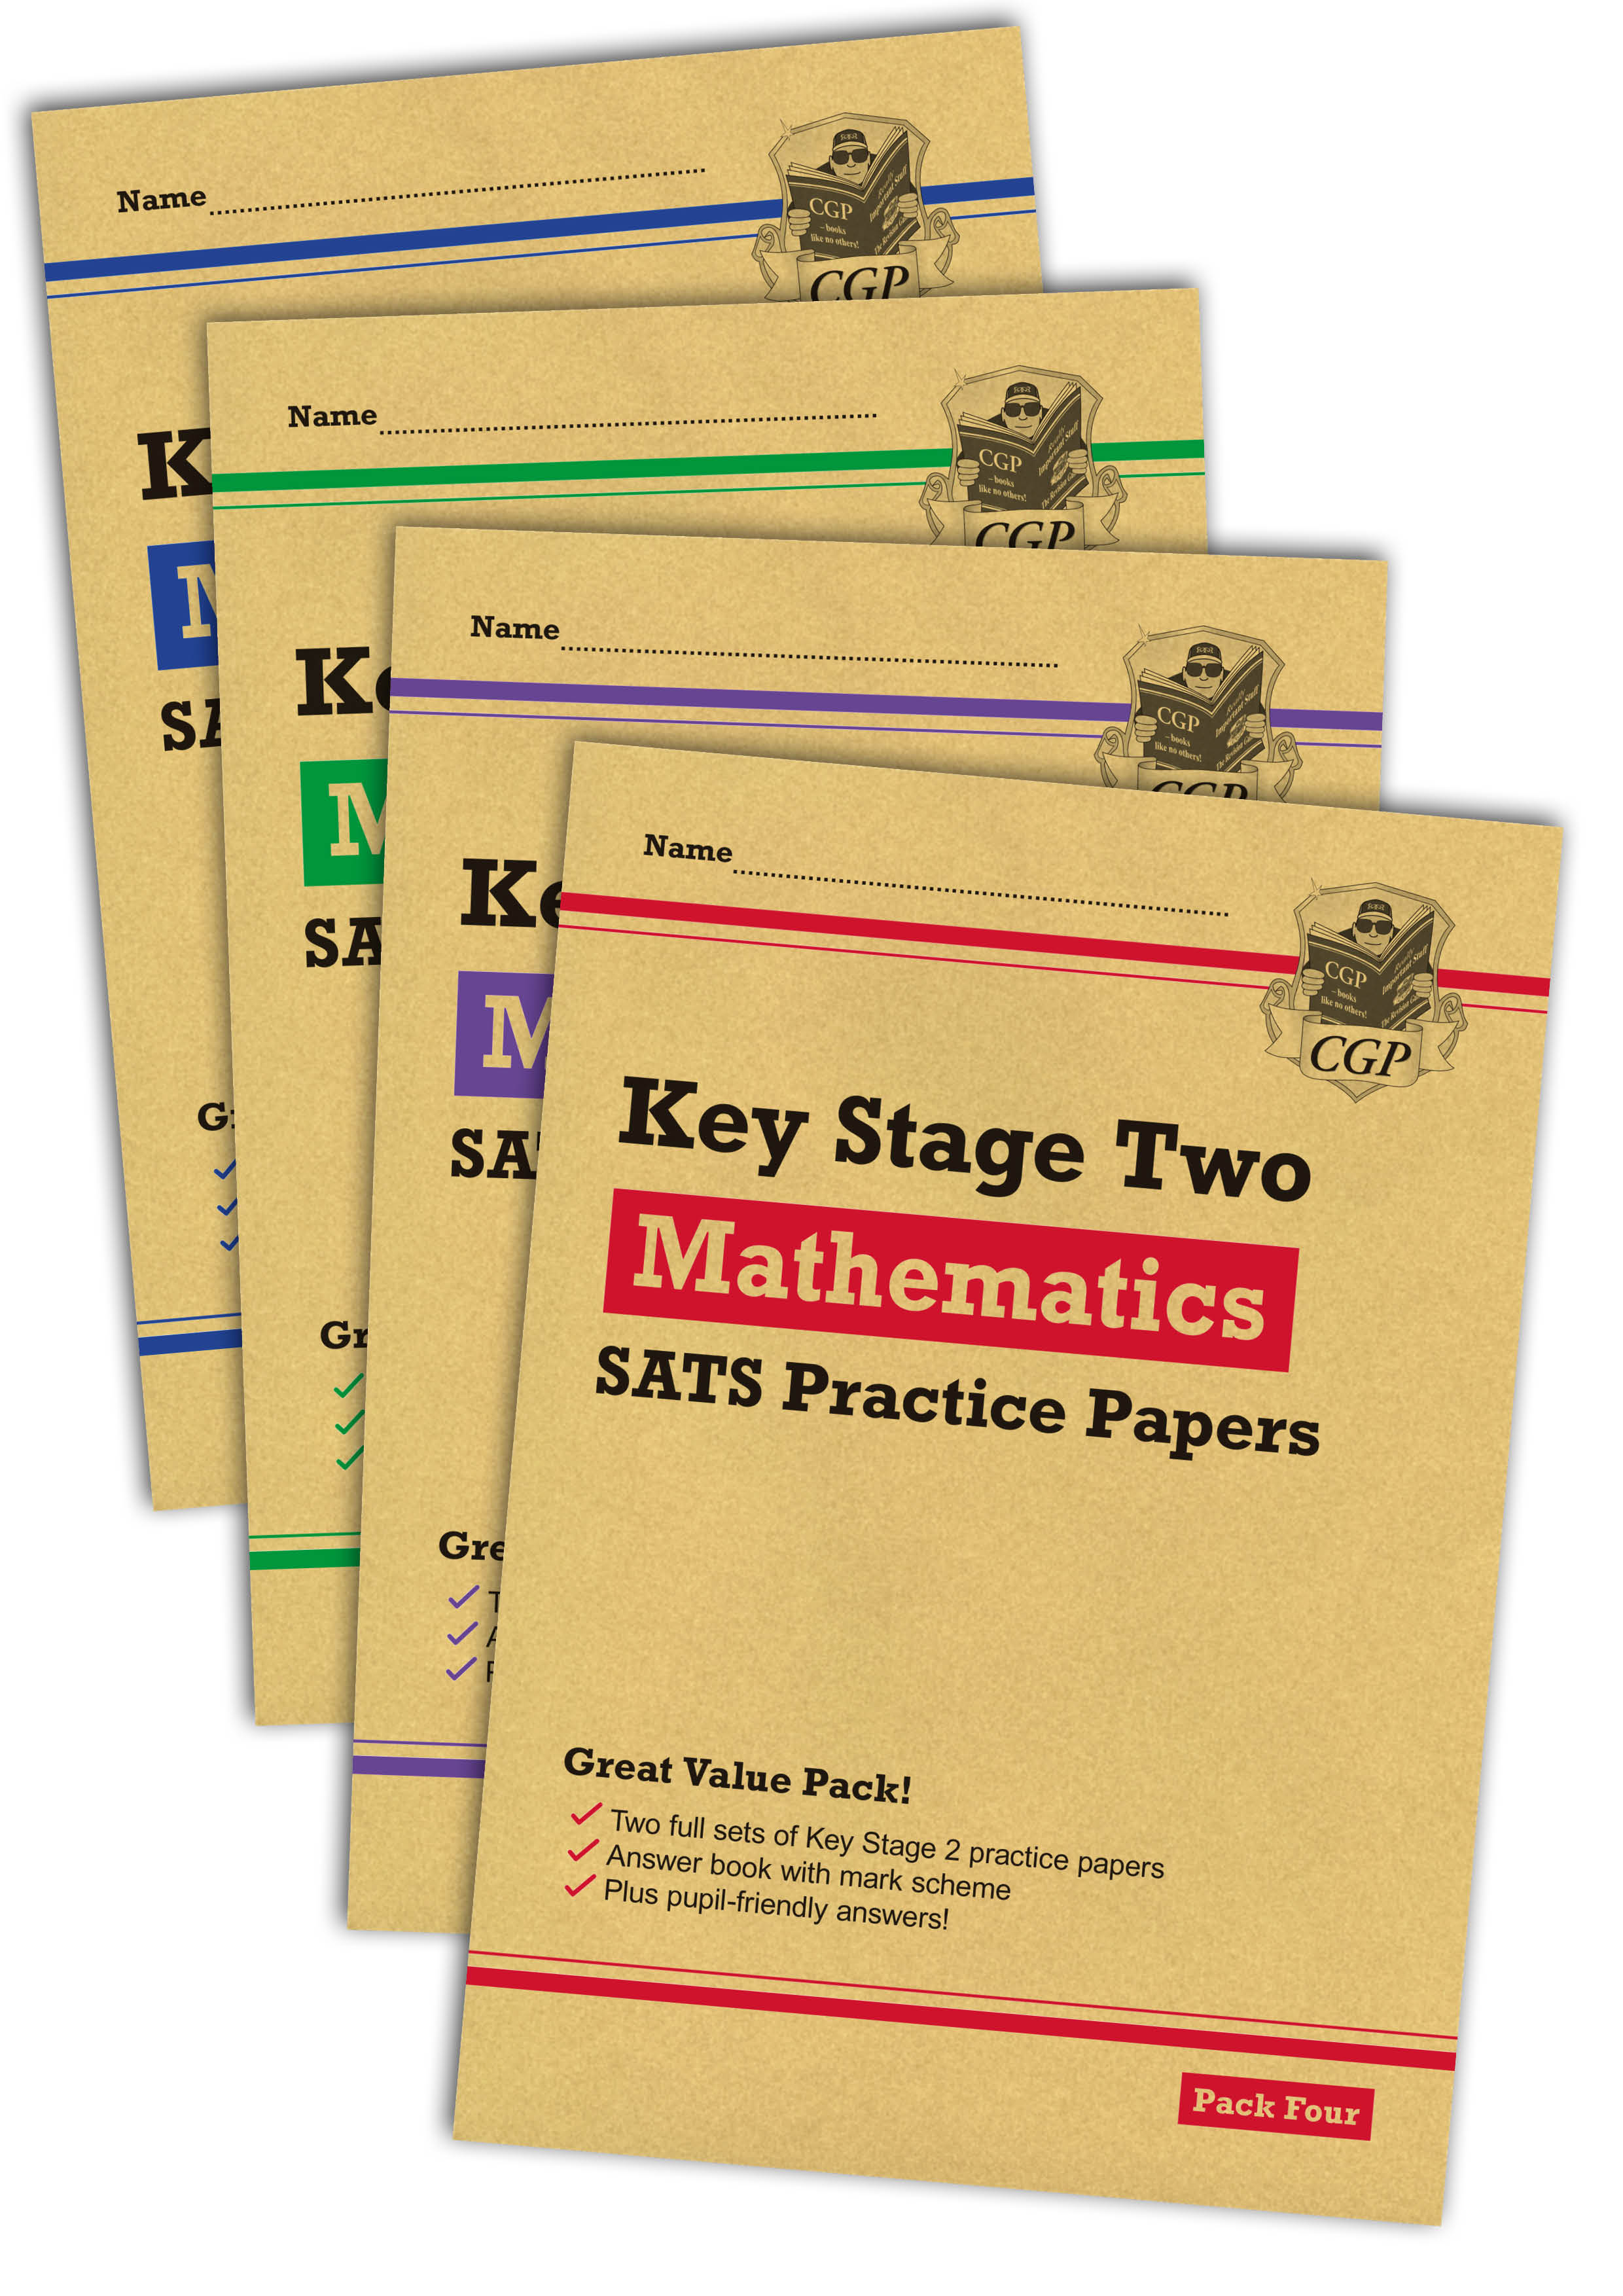 MHB4P23 - New KS2 Maths SATS Practice Paper Bundle: Packs 1, 2, 3 & 4 (for the 2020 tests)